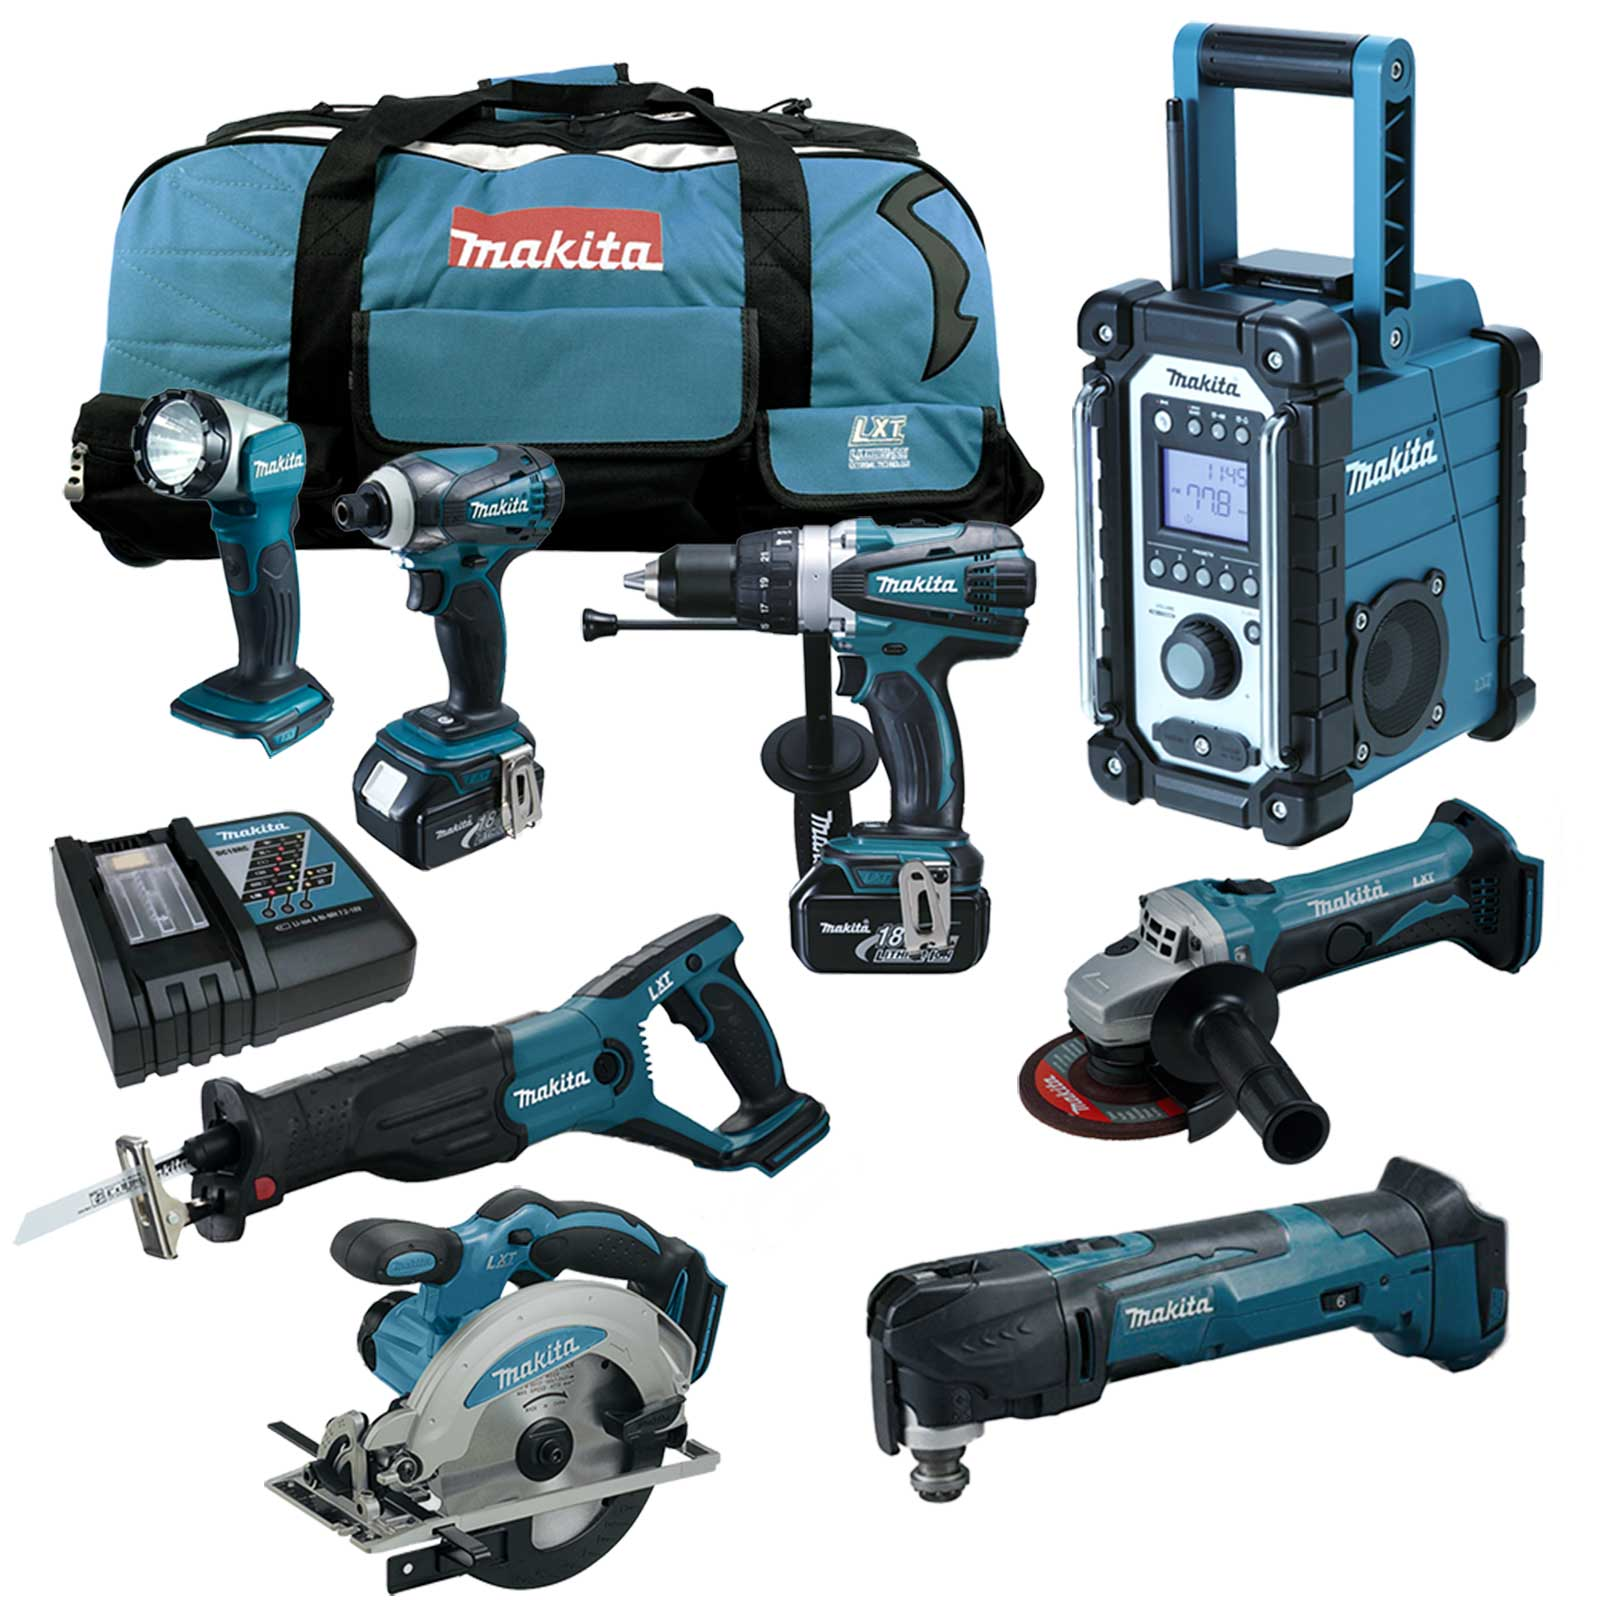 makita dtm51 rt1j3 multitool lxt 18v akku werkzeug set multifunktionswerkzeug 88381815130 ebay. Black Bedroom Furniture Sets. Home Design Ideas